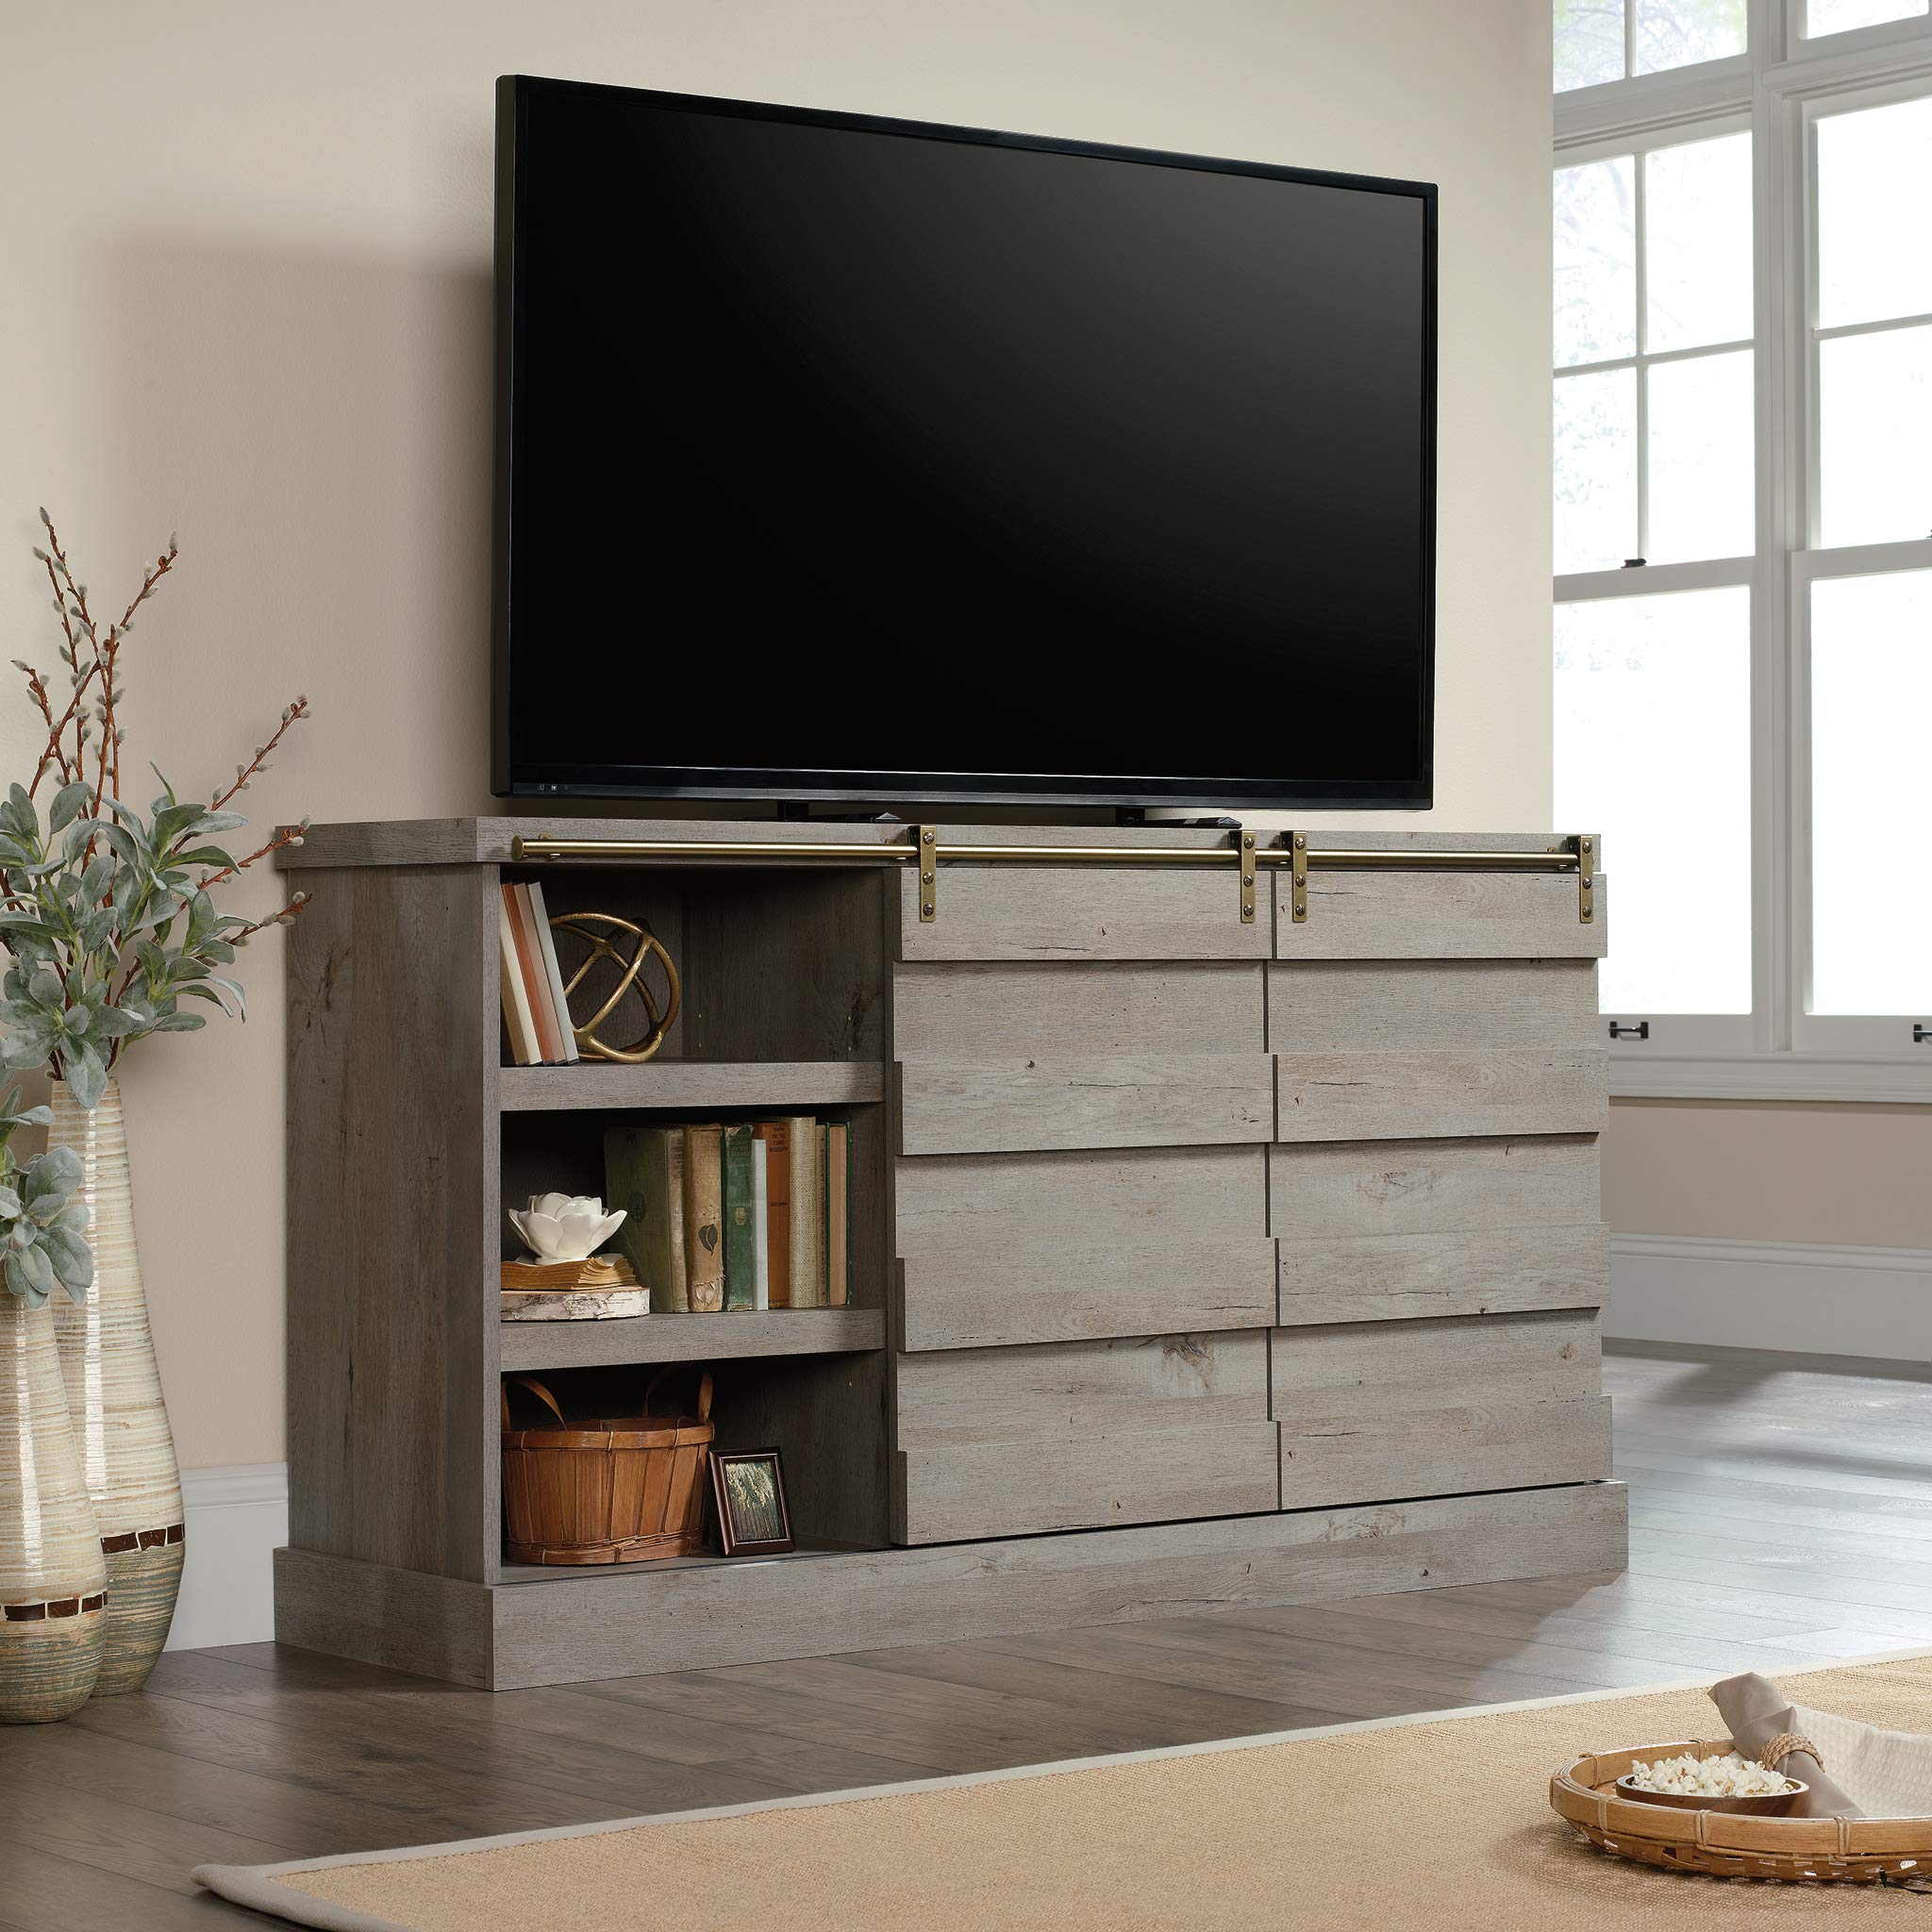 Sauder 422875 Cannery Bridge Credenza, Accommodates up to a 60'' TV Weighing 70 lbs. or Less, Mystic Oak Finish by Sauder (Image #4)